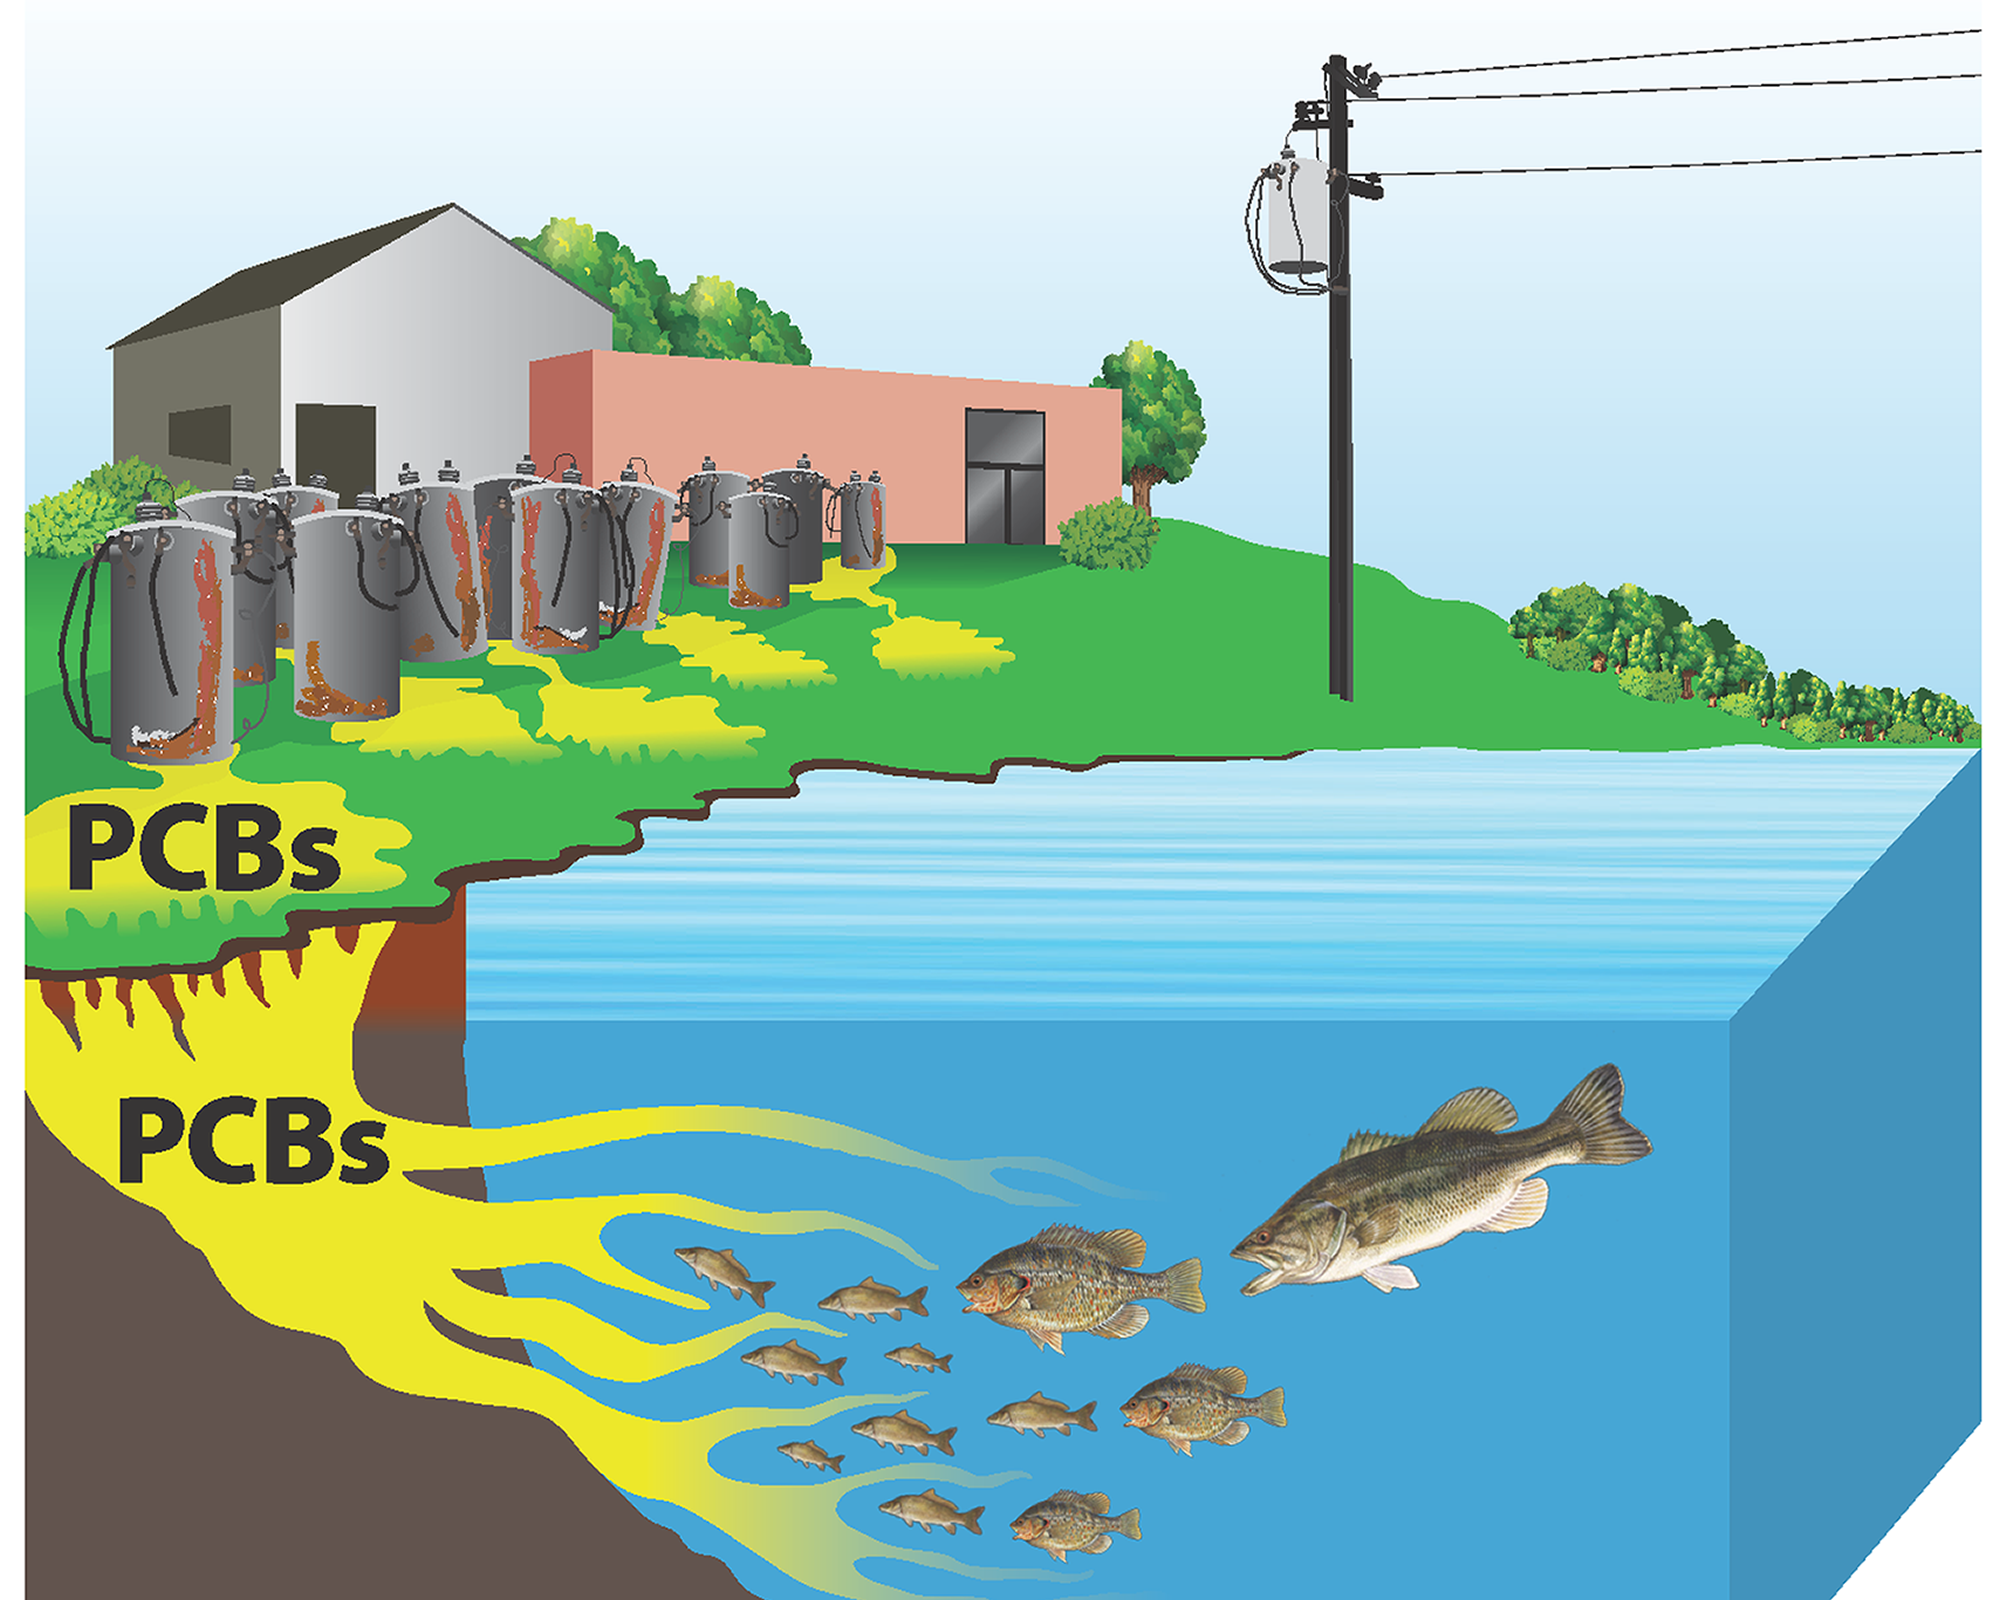 PCBs enter the water where they join the food chain and bioaccumulate in fish, making them unsafe to eat.  Image courtesy of http://eatfishwisely.org/contaminants/